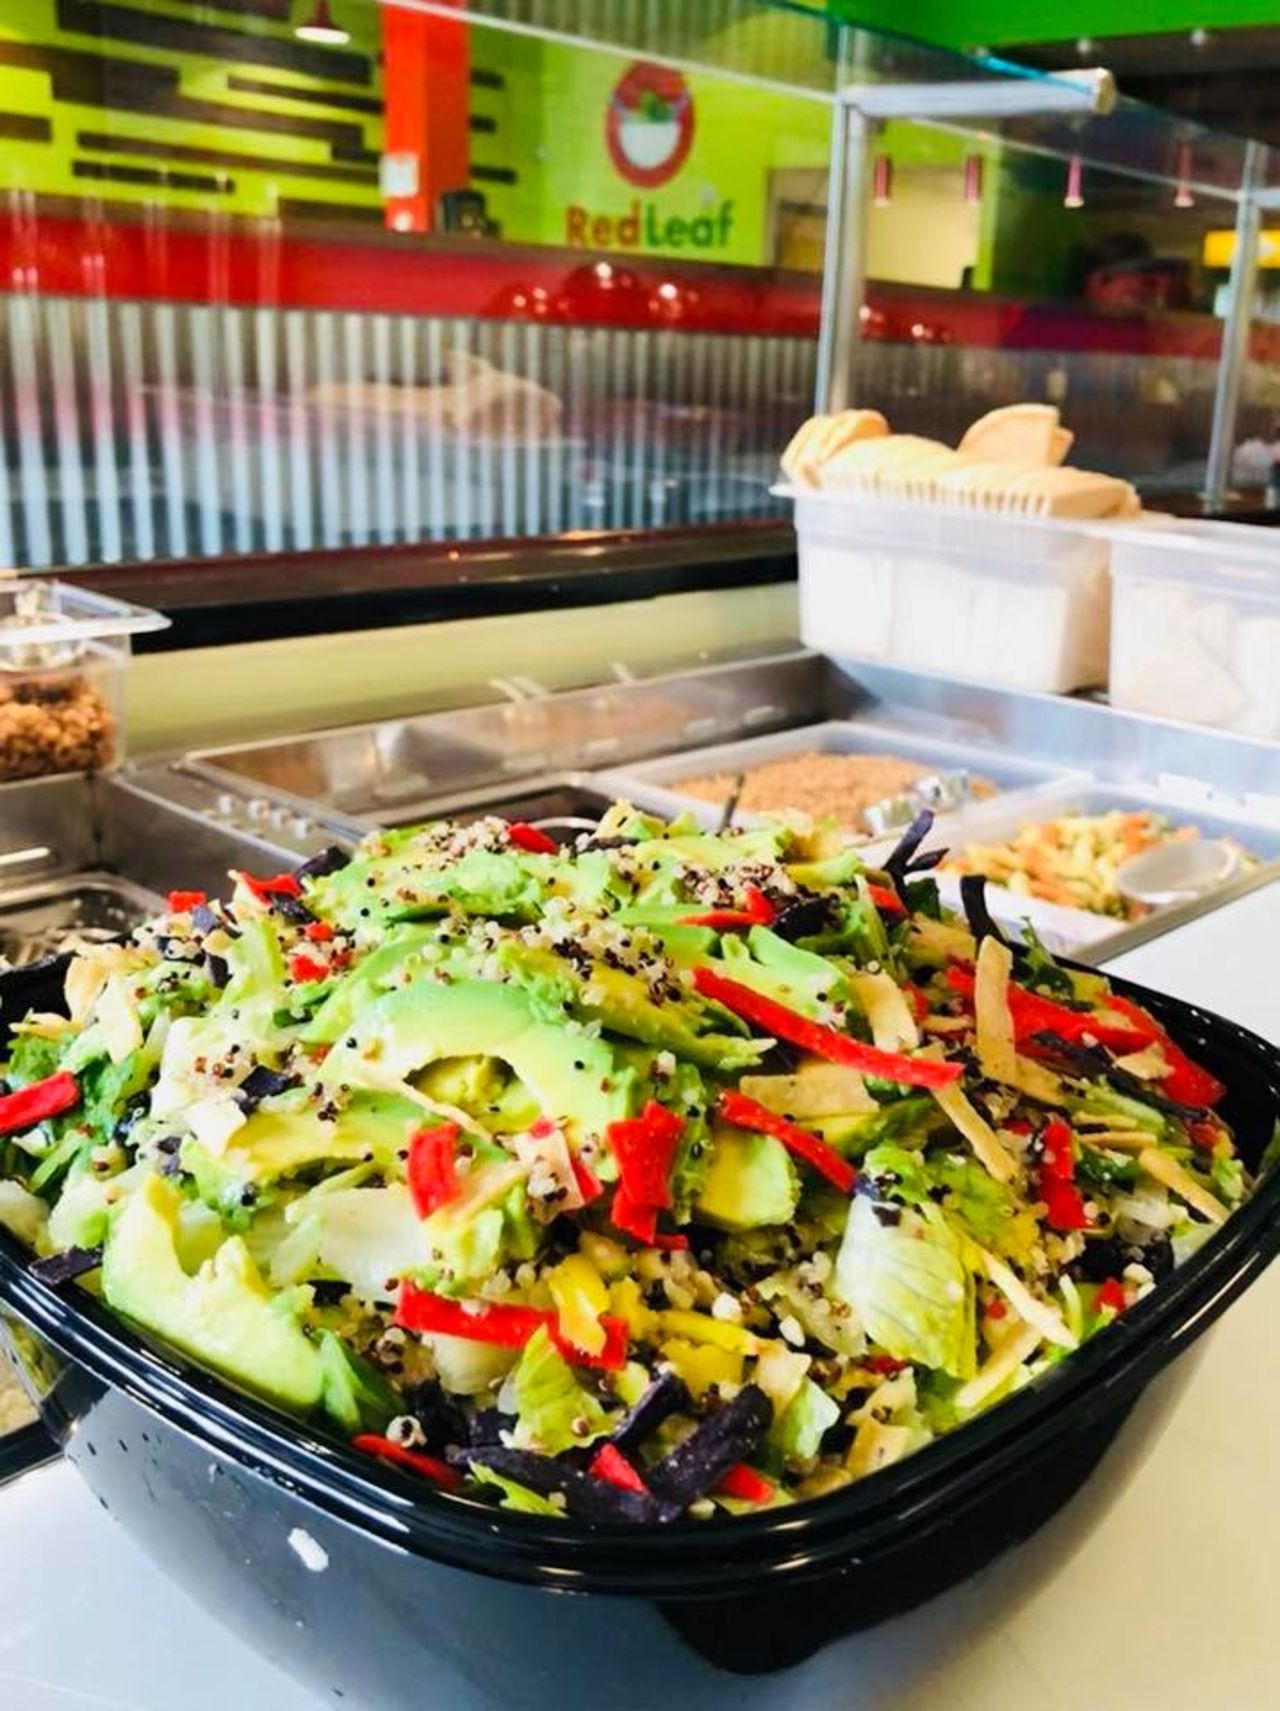 A photo of Red Leaf Salad Company